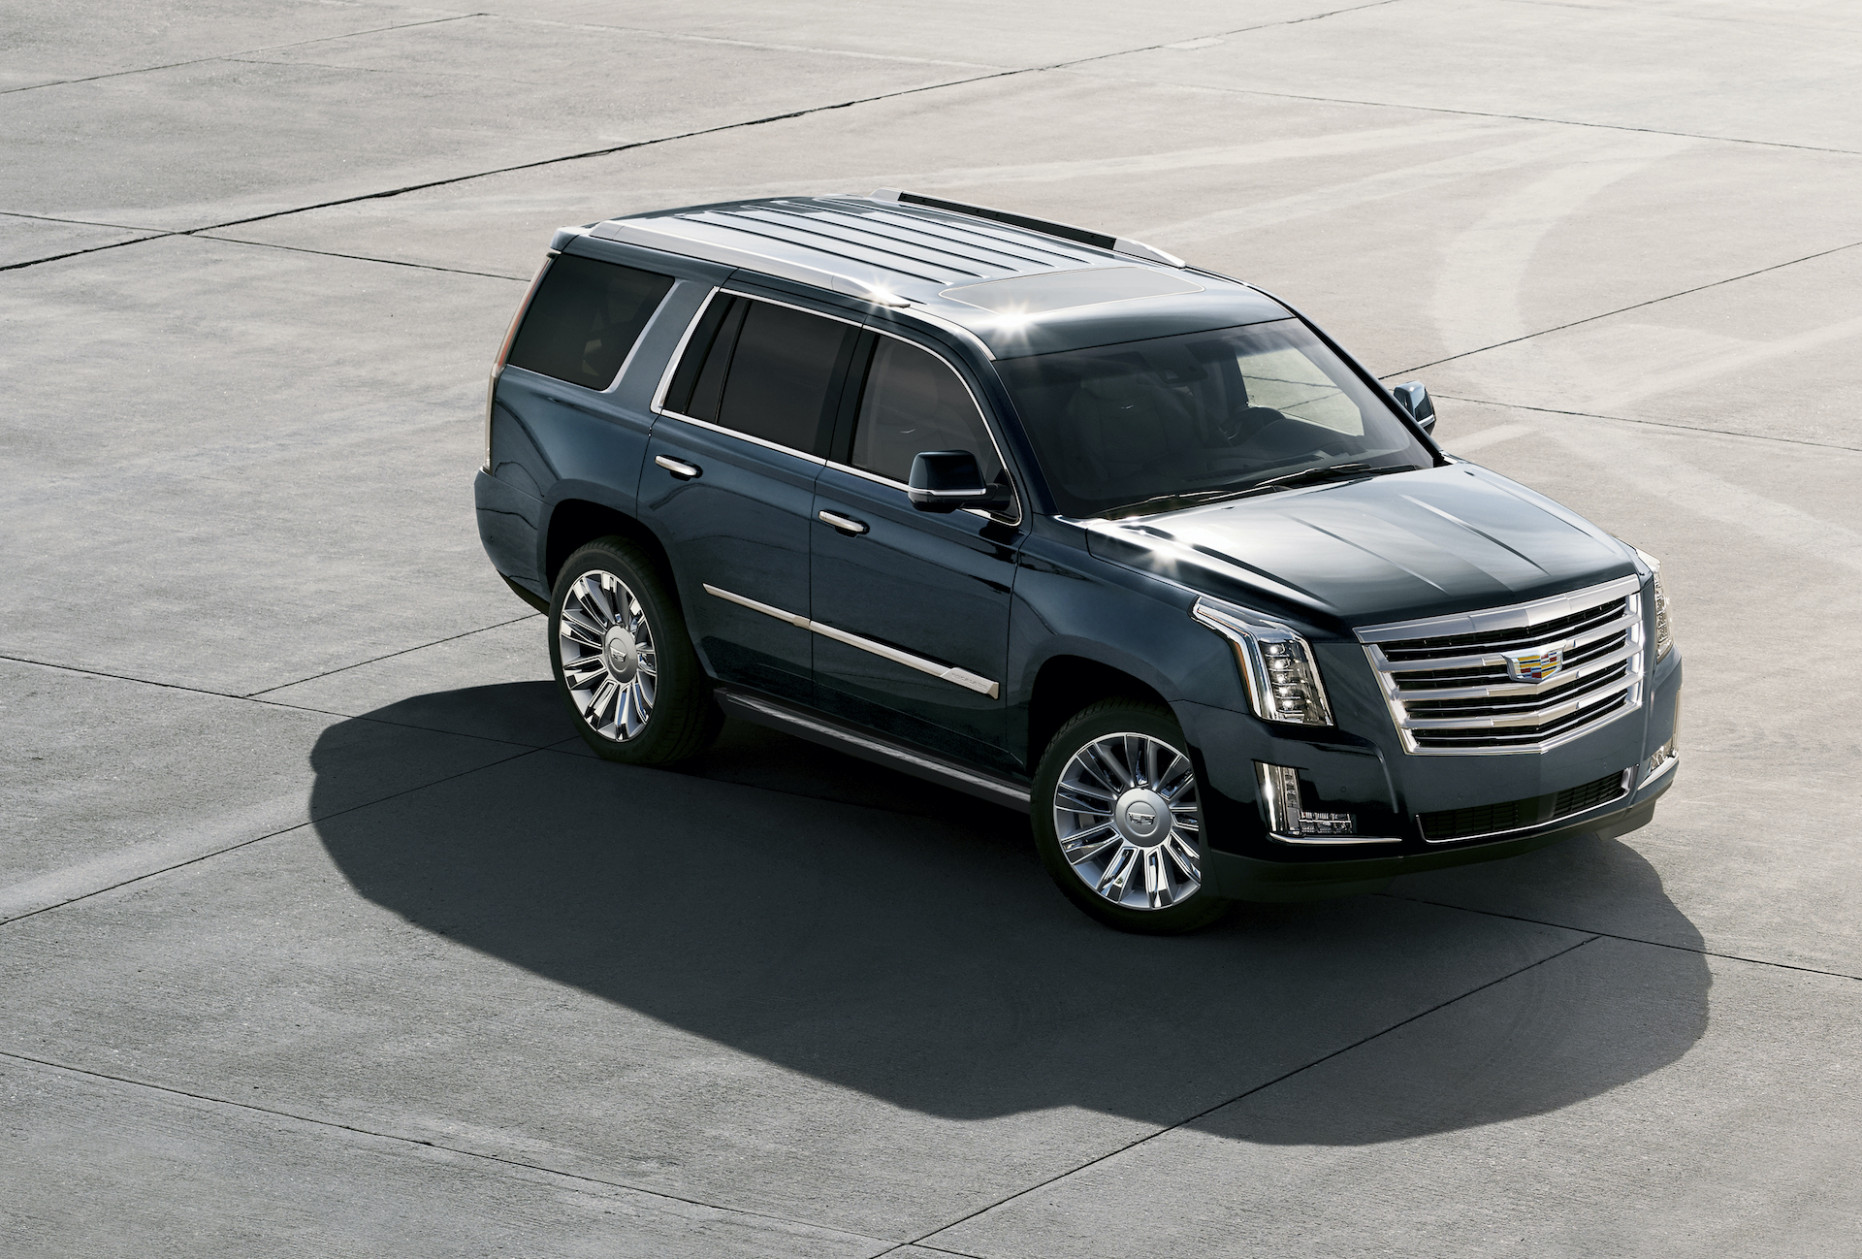 10 Cadillac Escalade Review, Ratings, Specs, Prices, and Photos ...